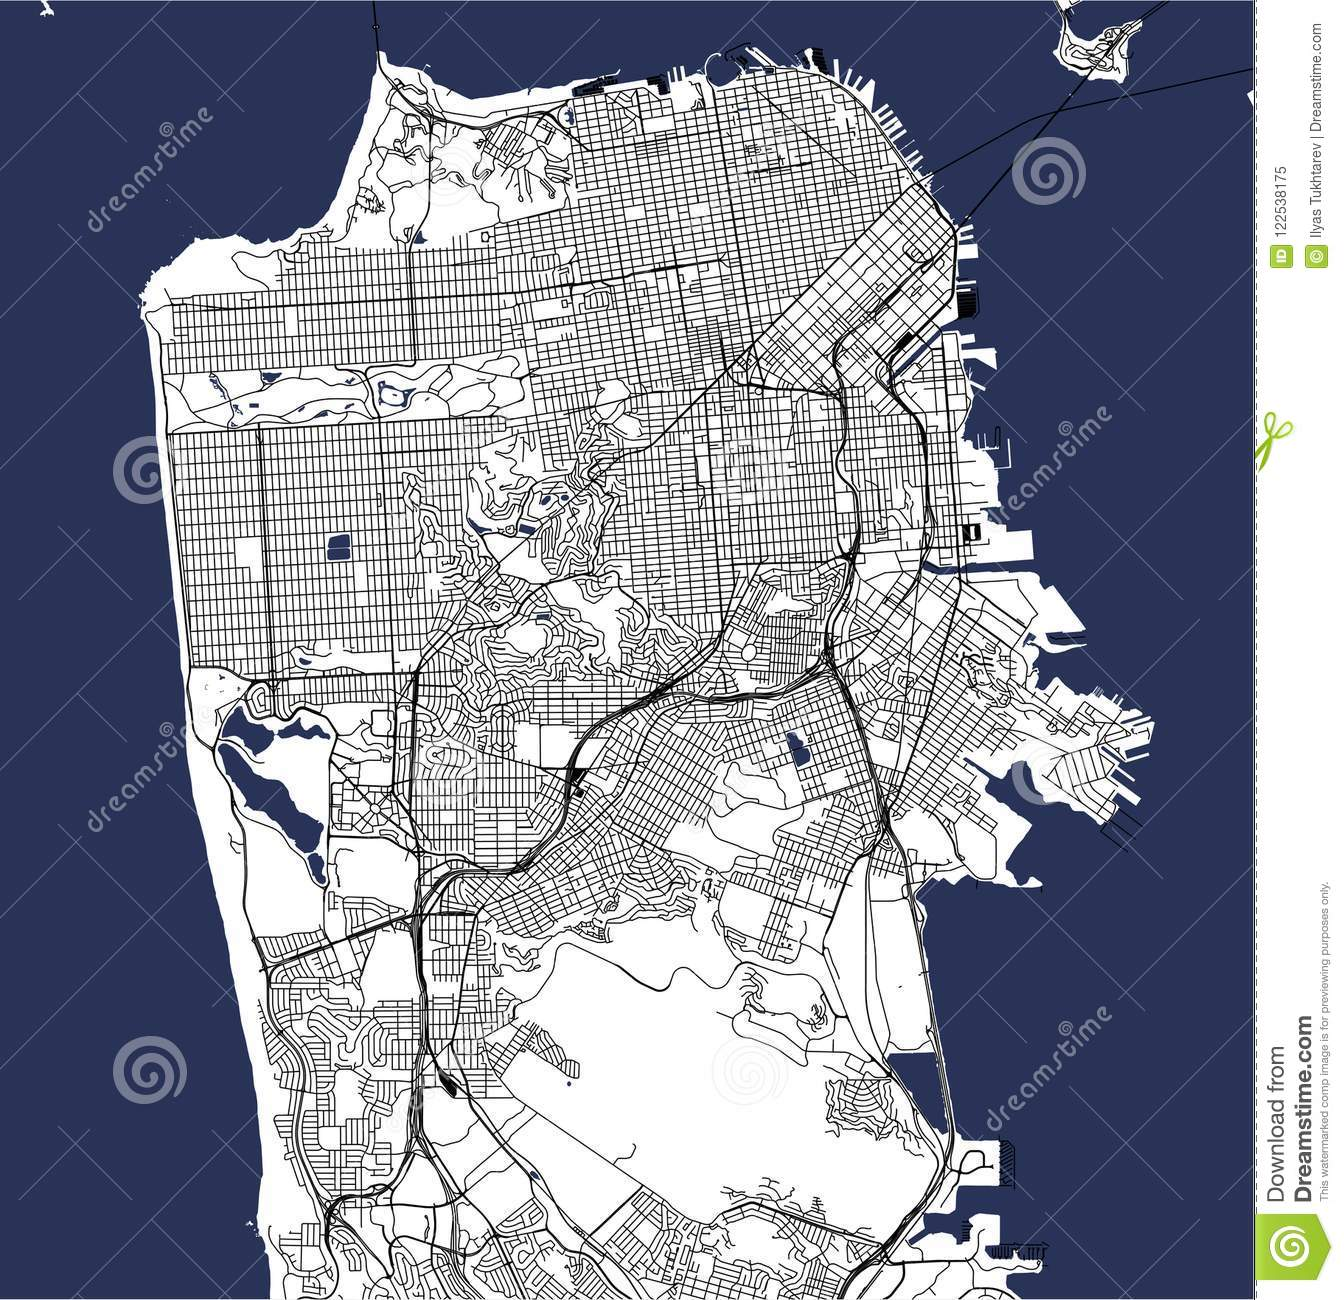 Map Of The City Of San Francisco, USA Stock Illustration ...